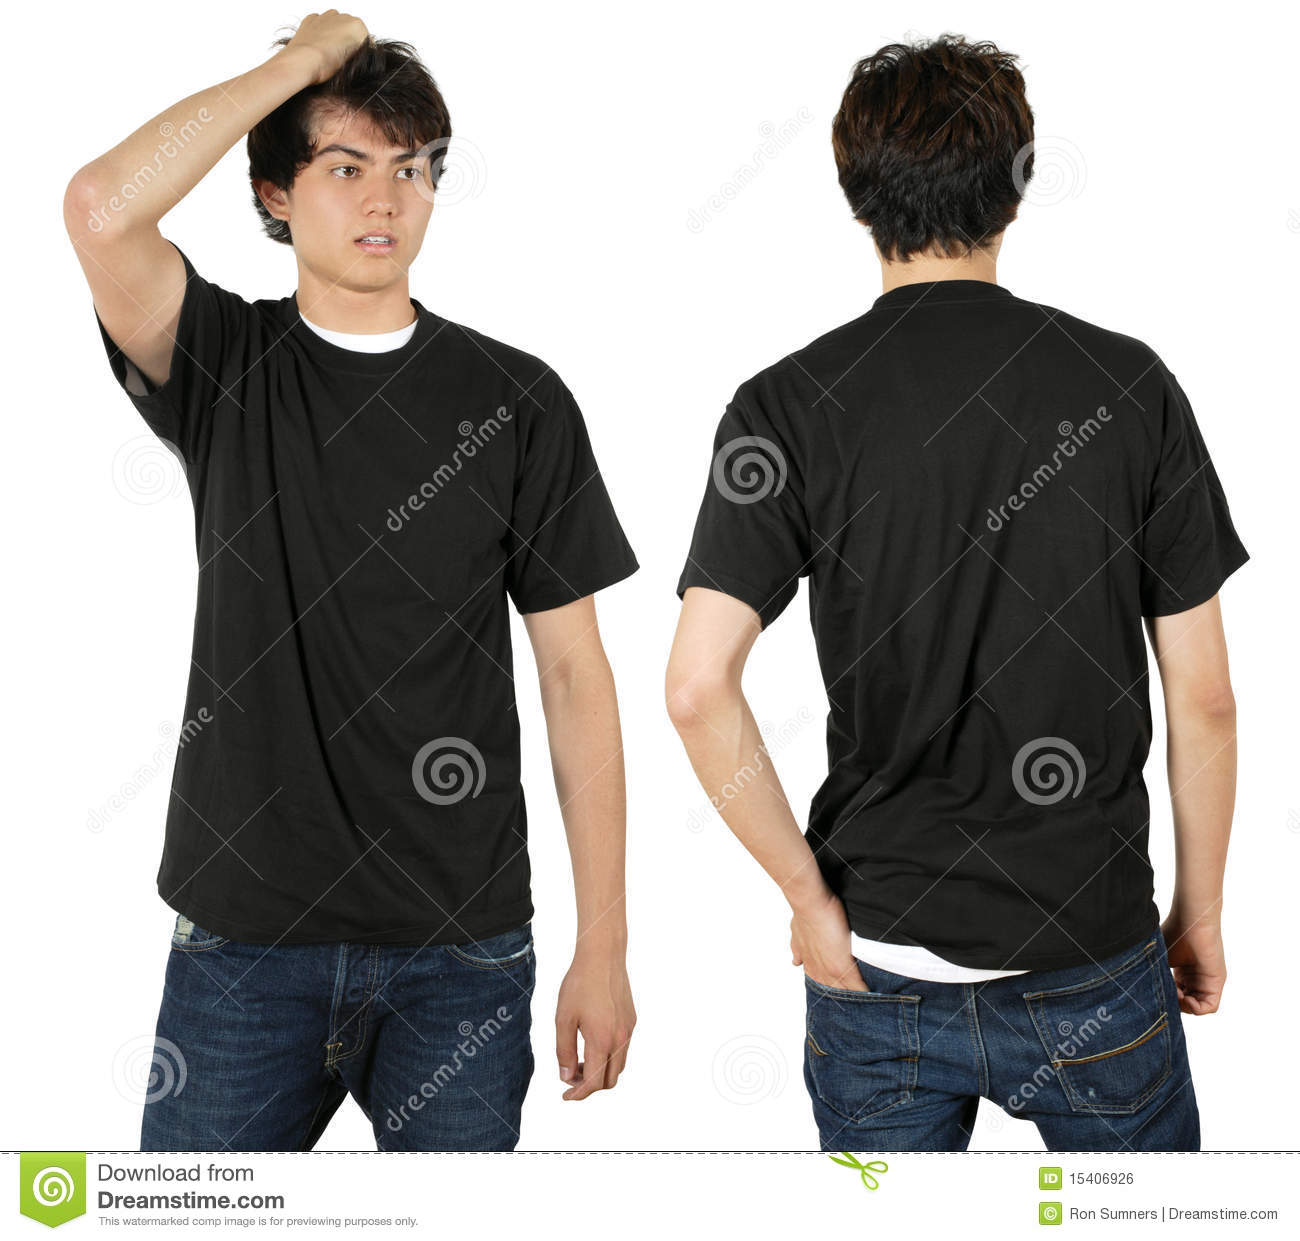 a45758f2 Male Wearing Blank Black Shirt Stock Photo - Image of clothes, teen ...